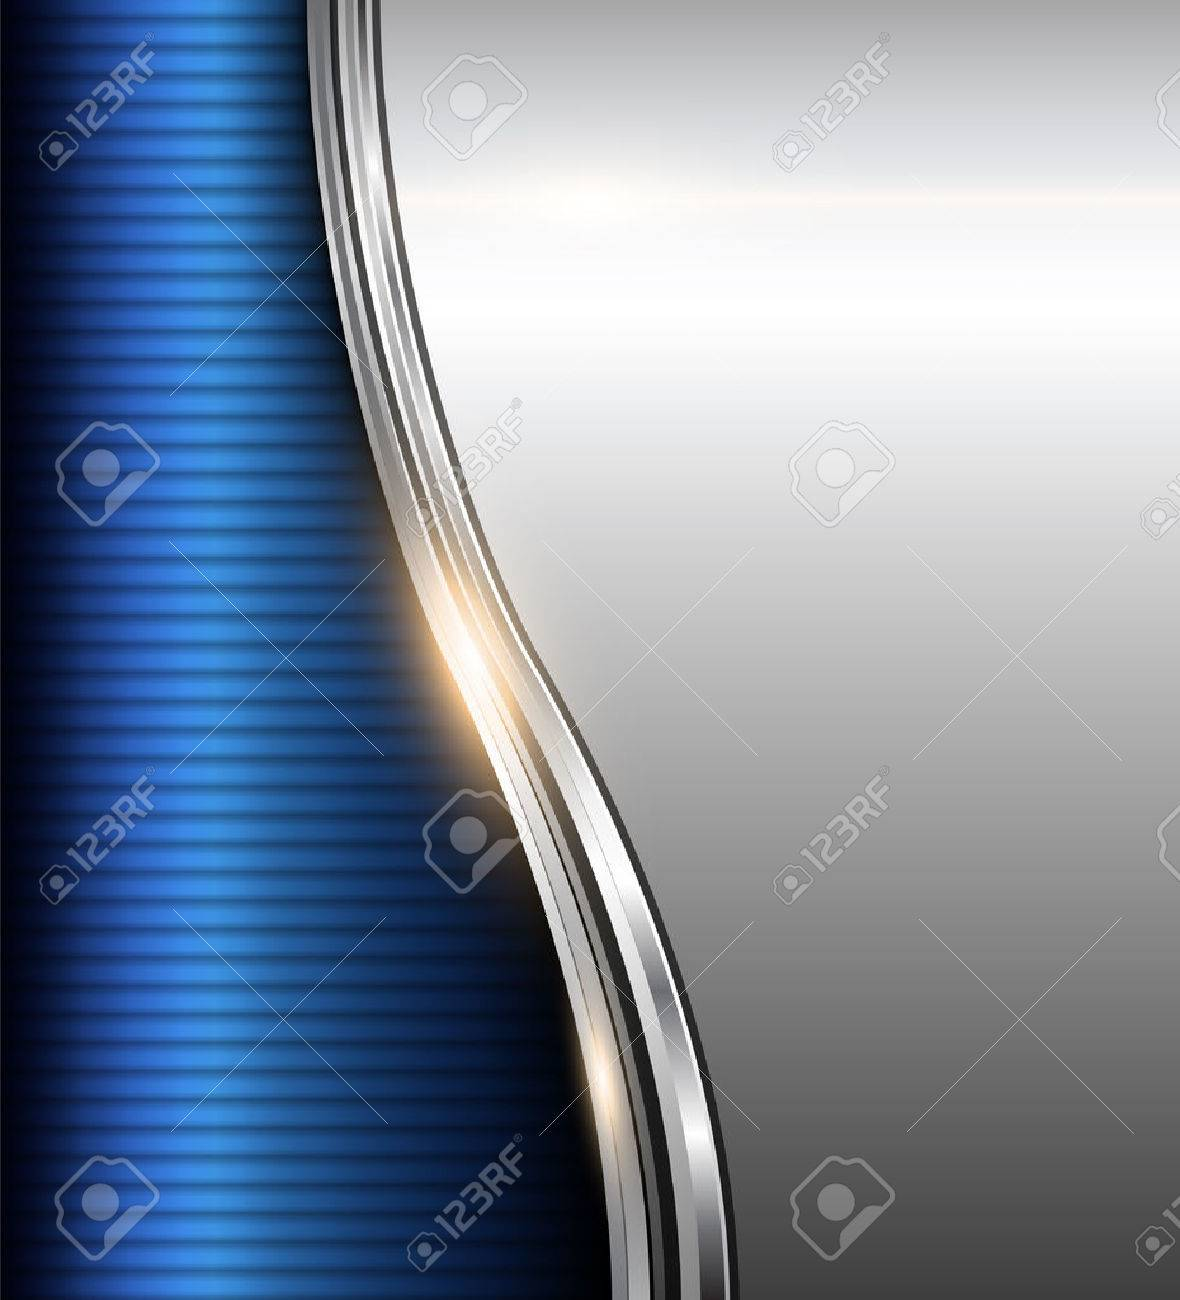 Abstract business background blue and silver, vector illustration. Stock Vector - 25042323